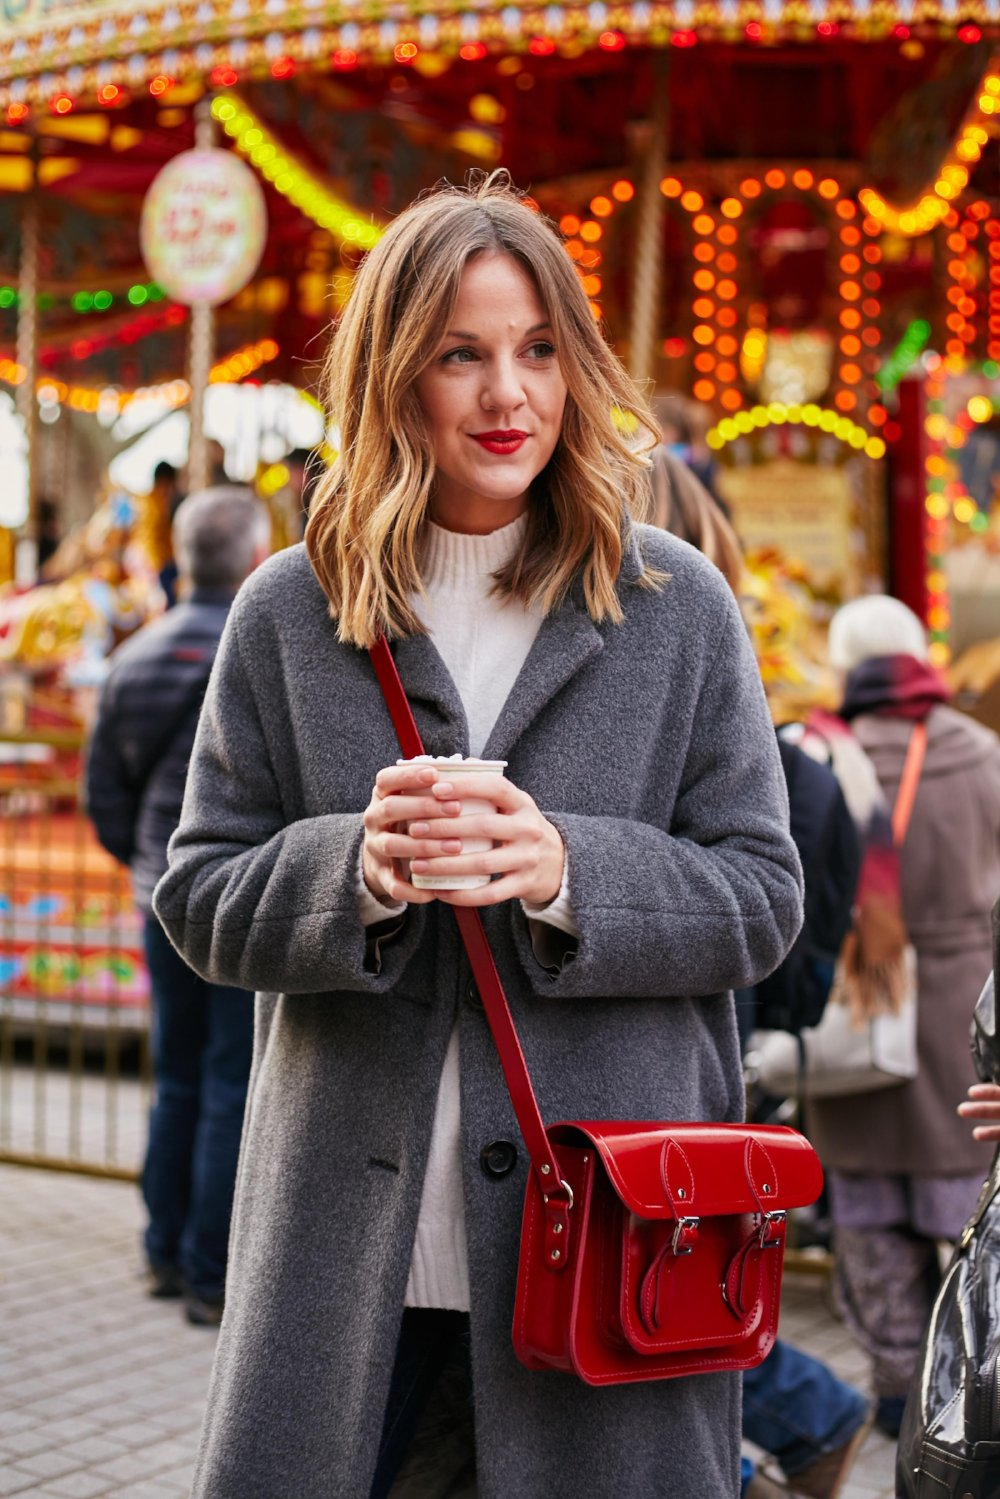 Cambridge Satchel - How To Dress For Winter